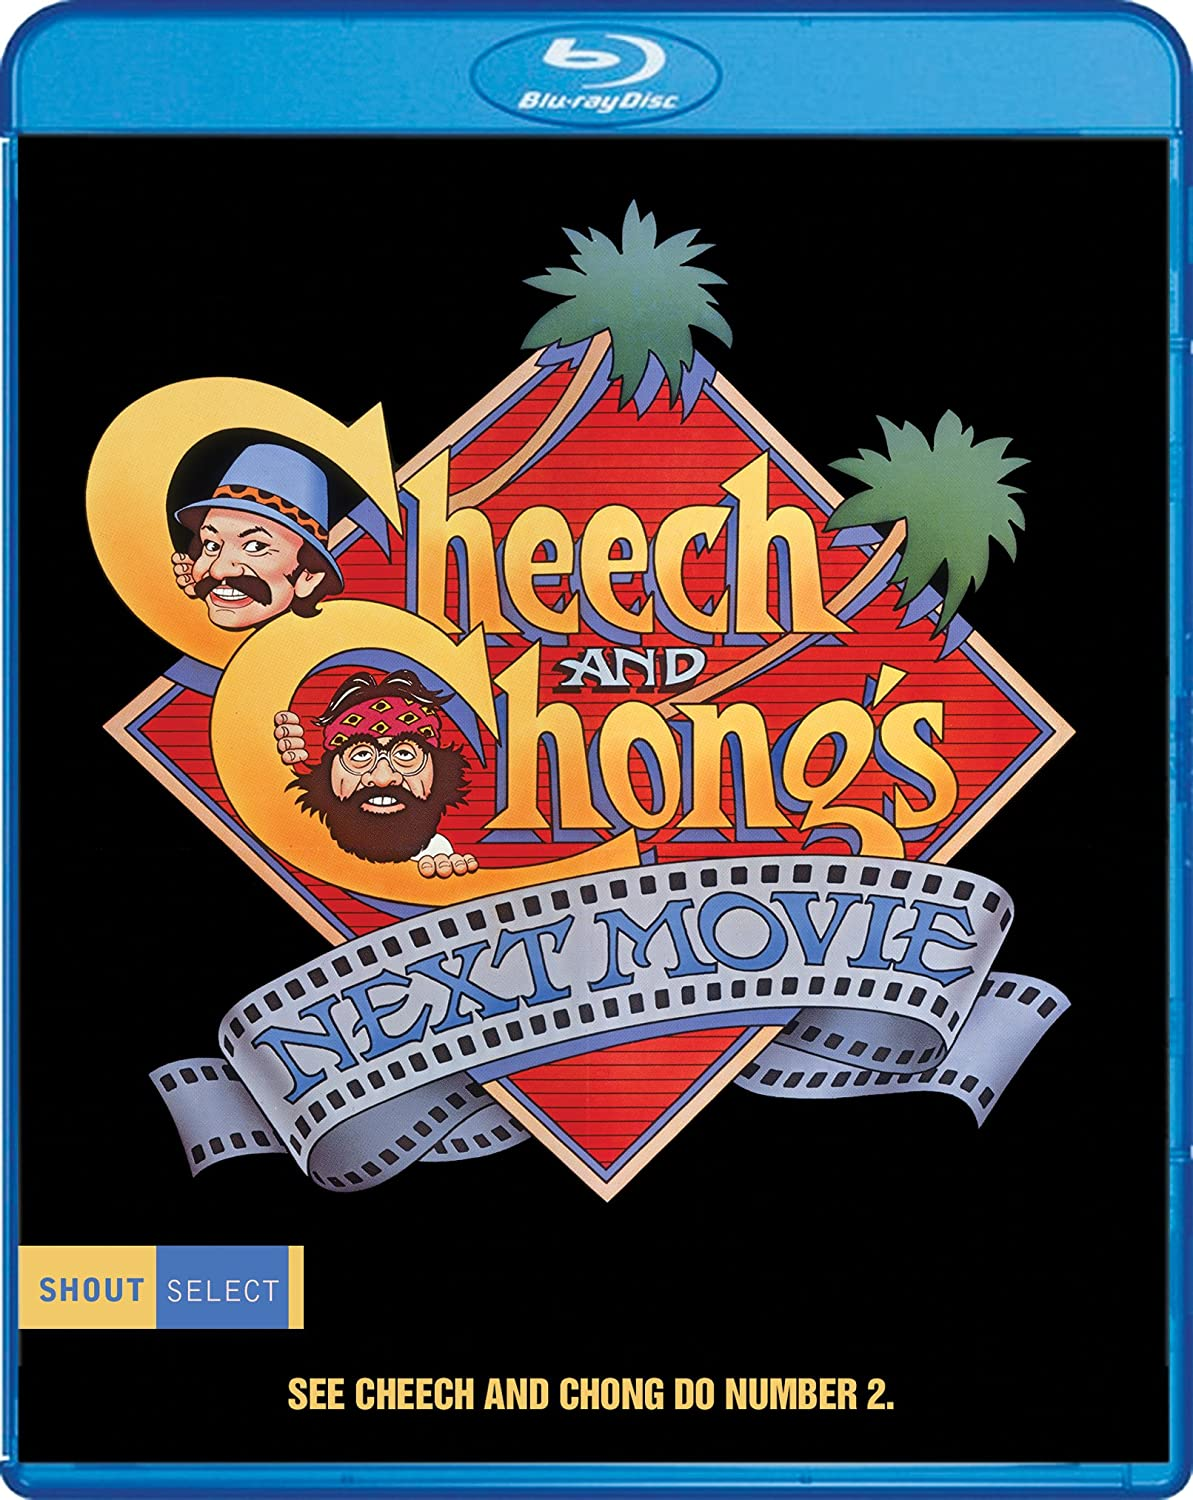 cheech and chongs next movie (1980) full movie